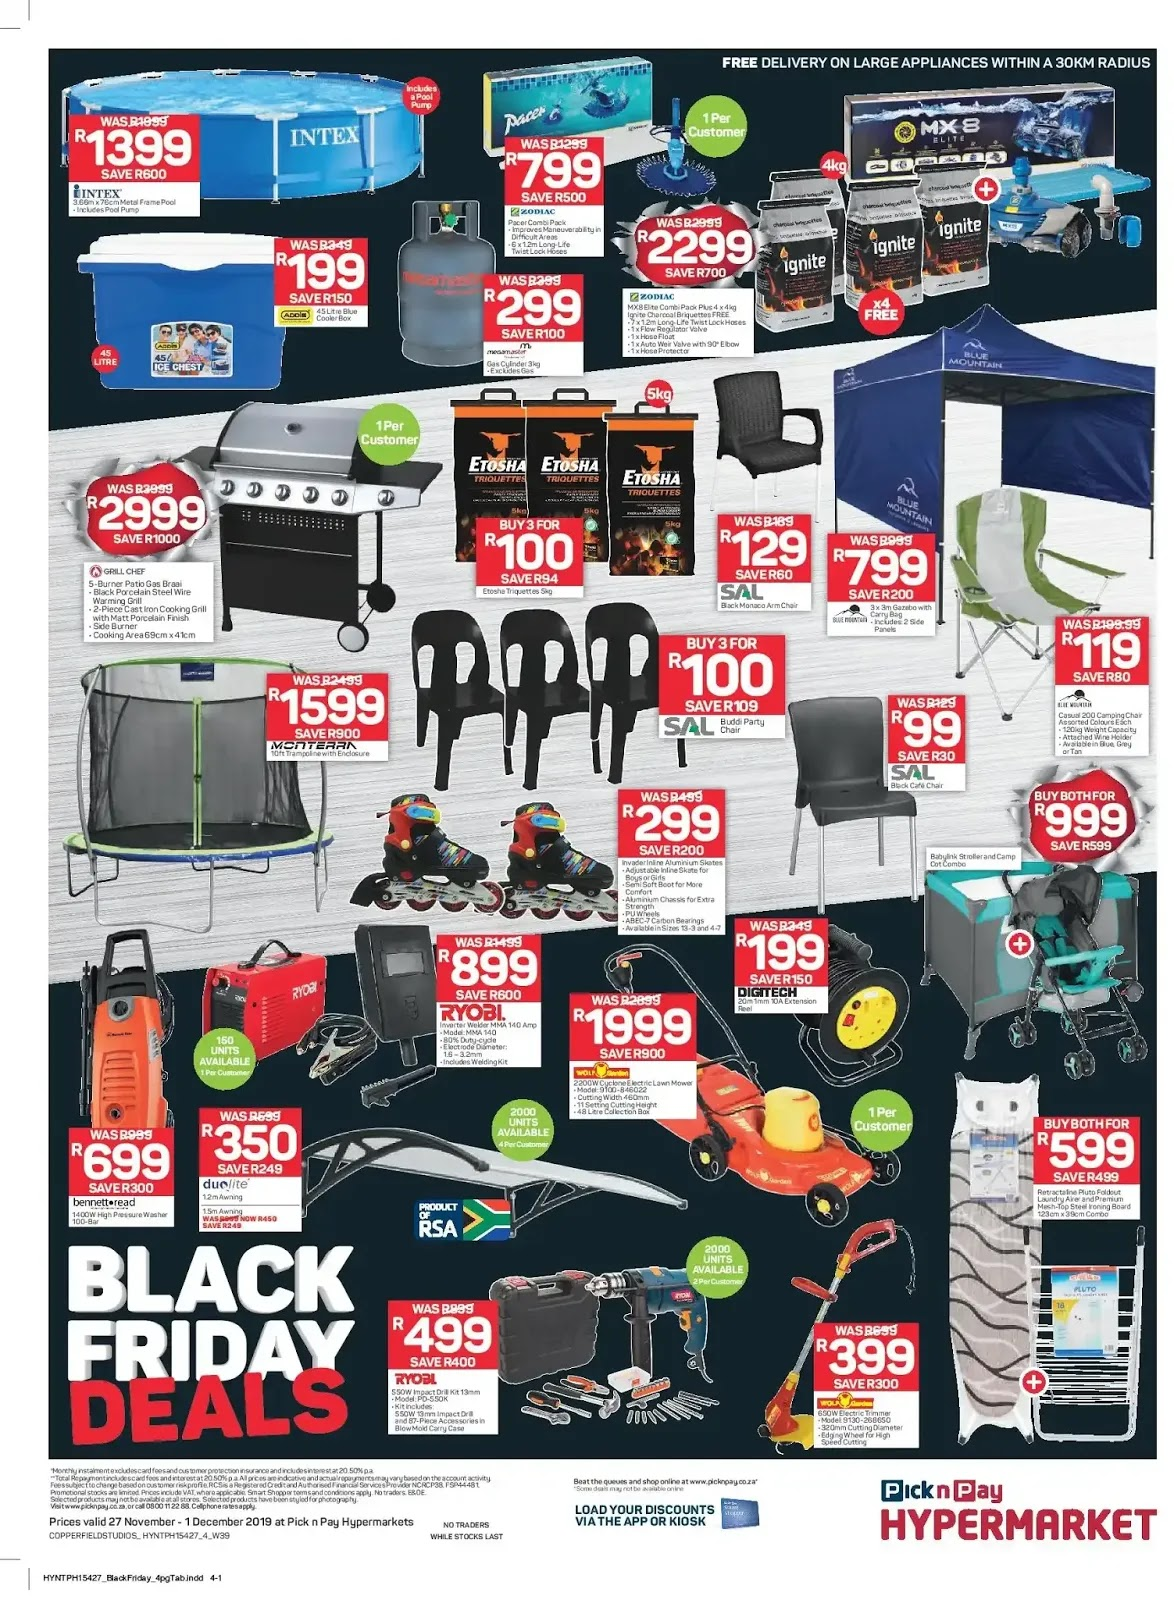 Pick n Pay Hypermarkets Black Friday deals - Page 3